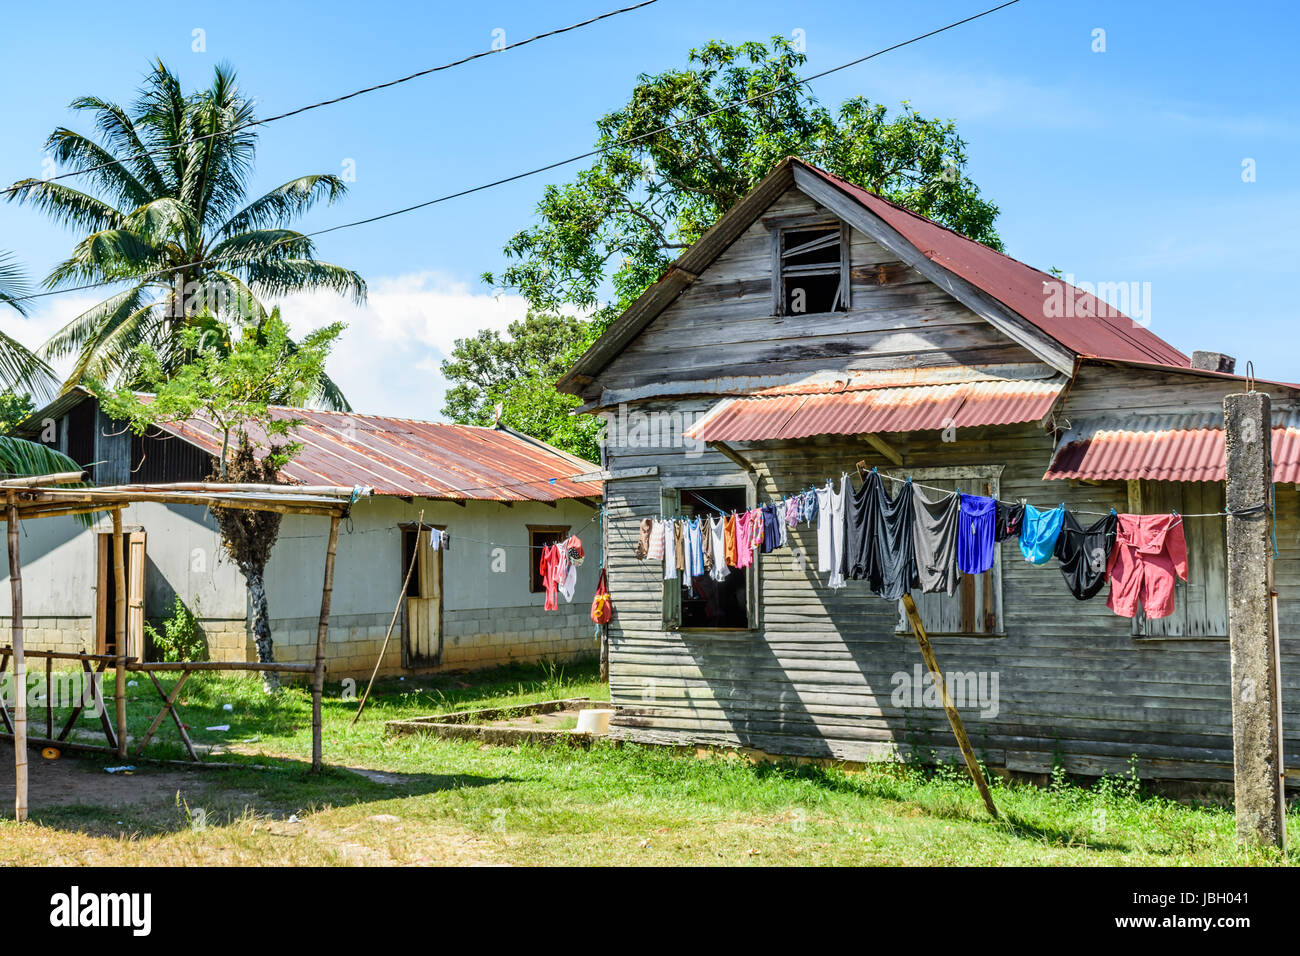 Livingston, Guatemala - August 31, 2016: Laundry hangs on washing line outside wooden house in Caribbean town of - Stock Image